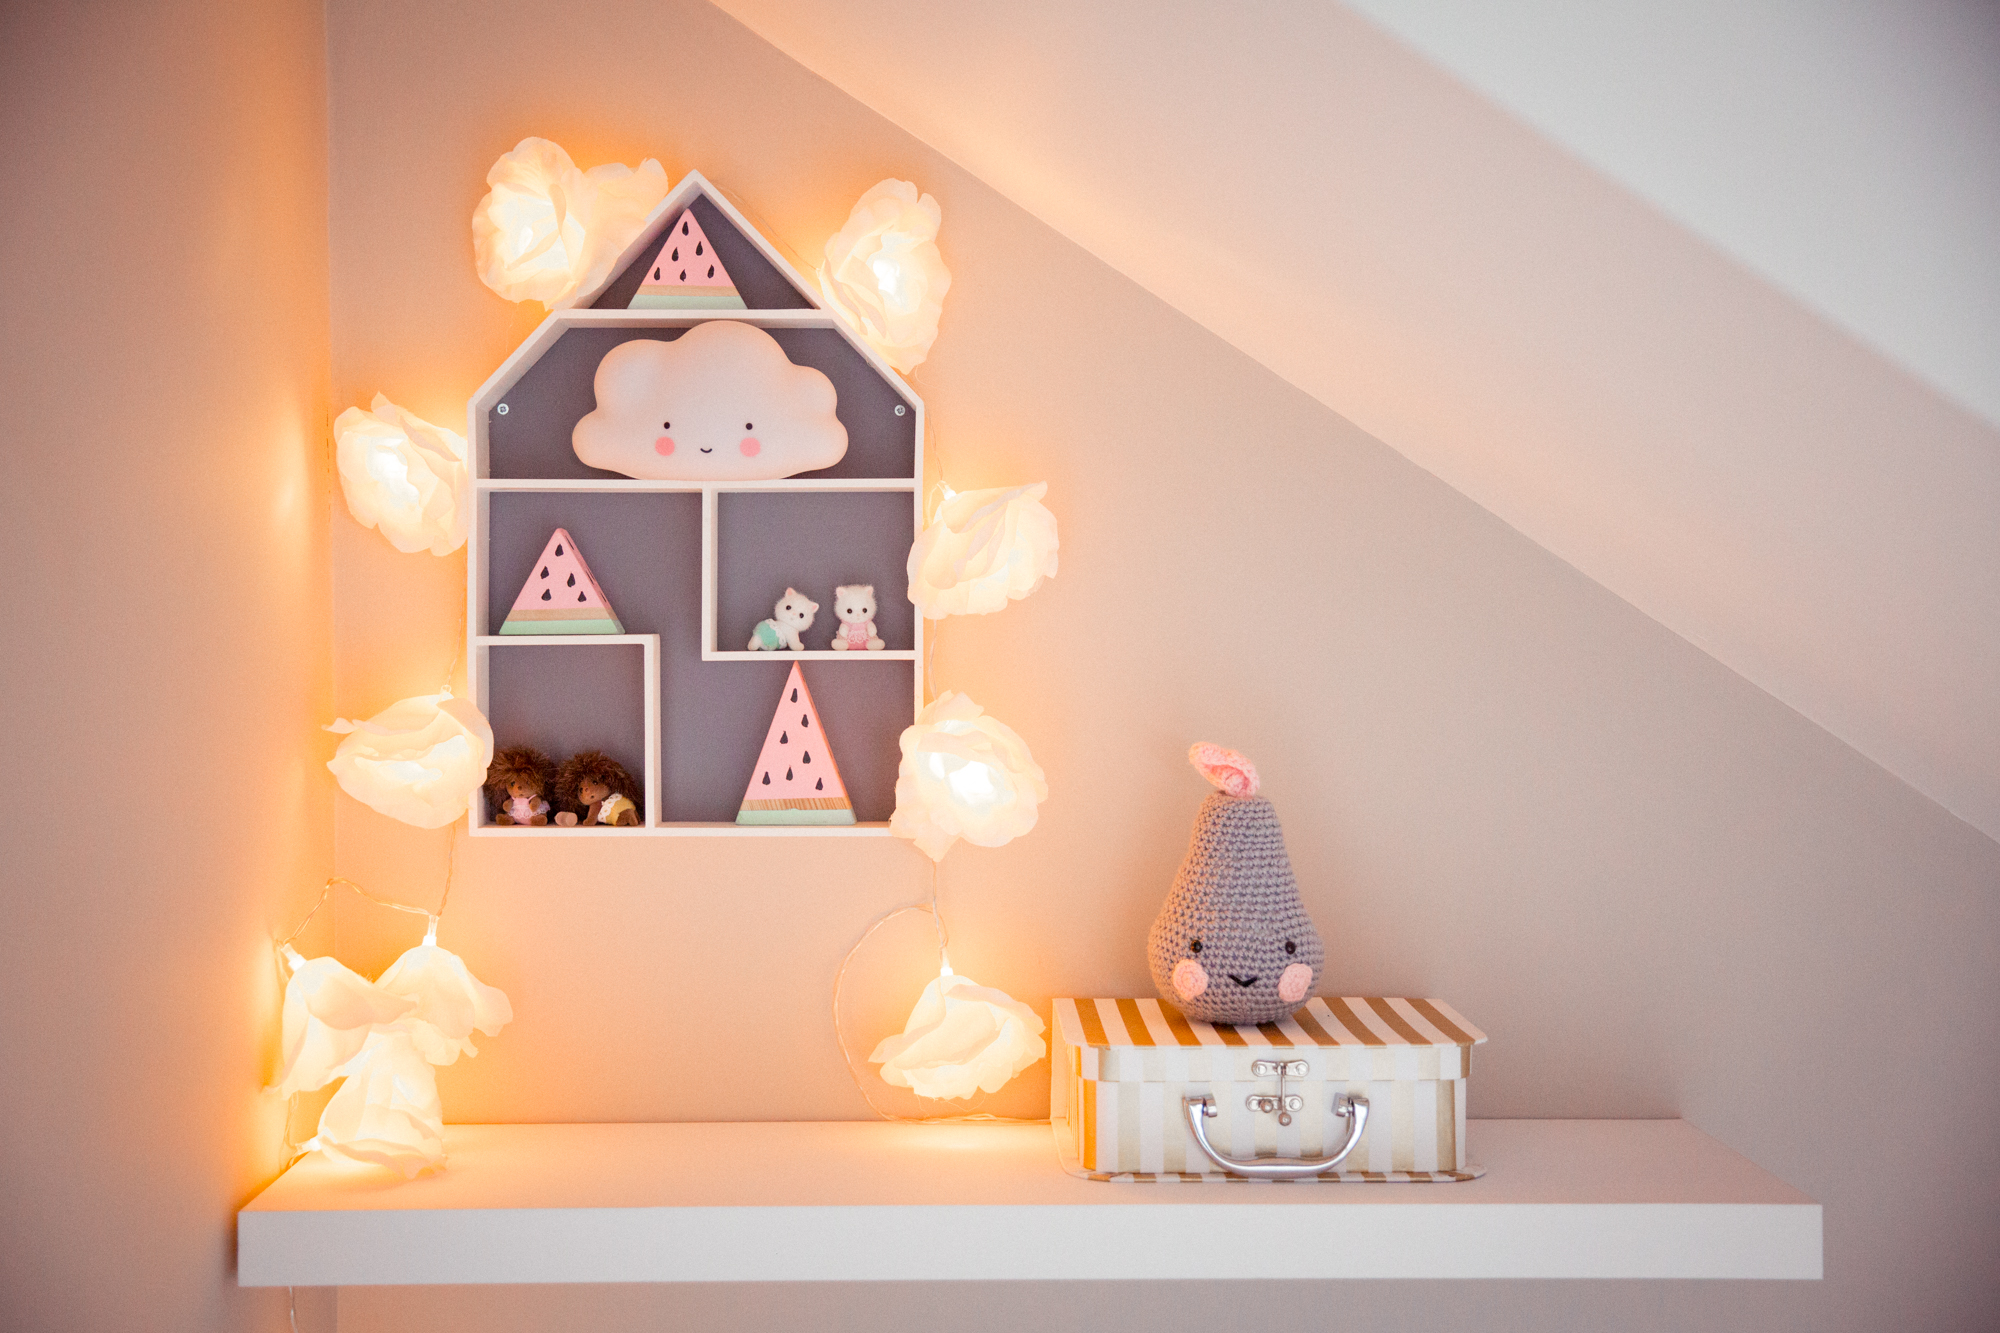 Lobella Loves gorgeous kids interiors and gifts